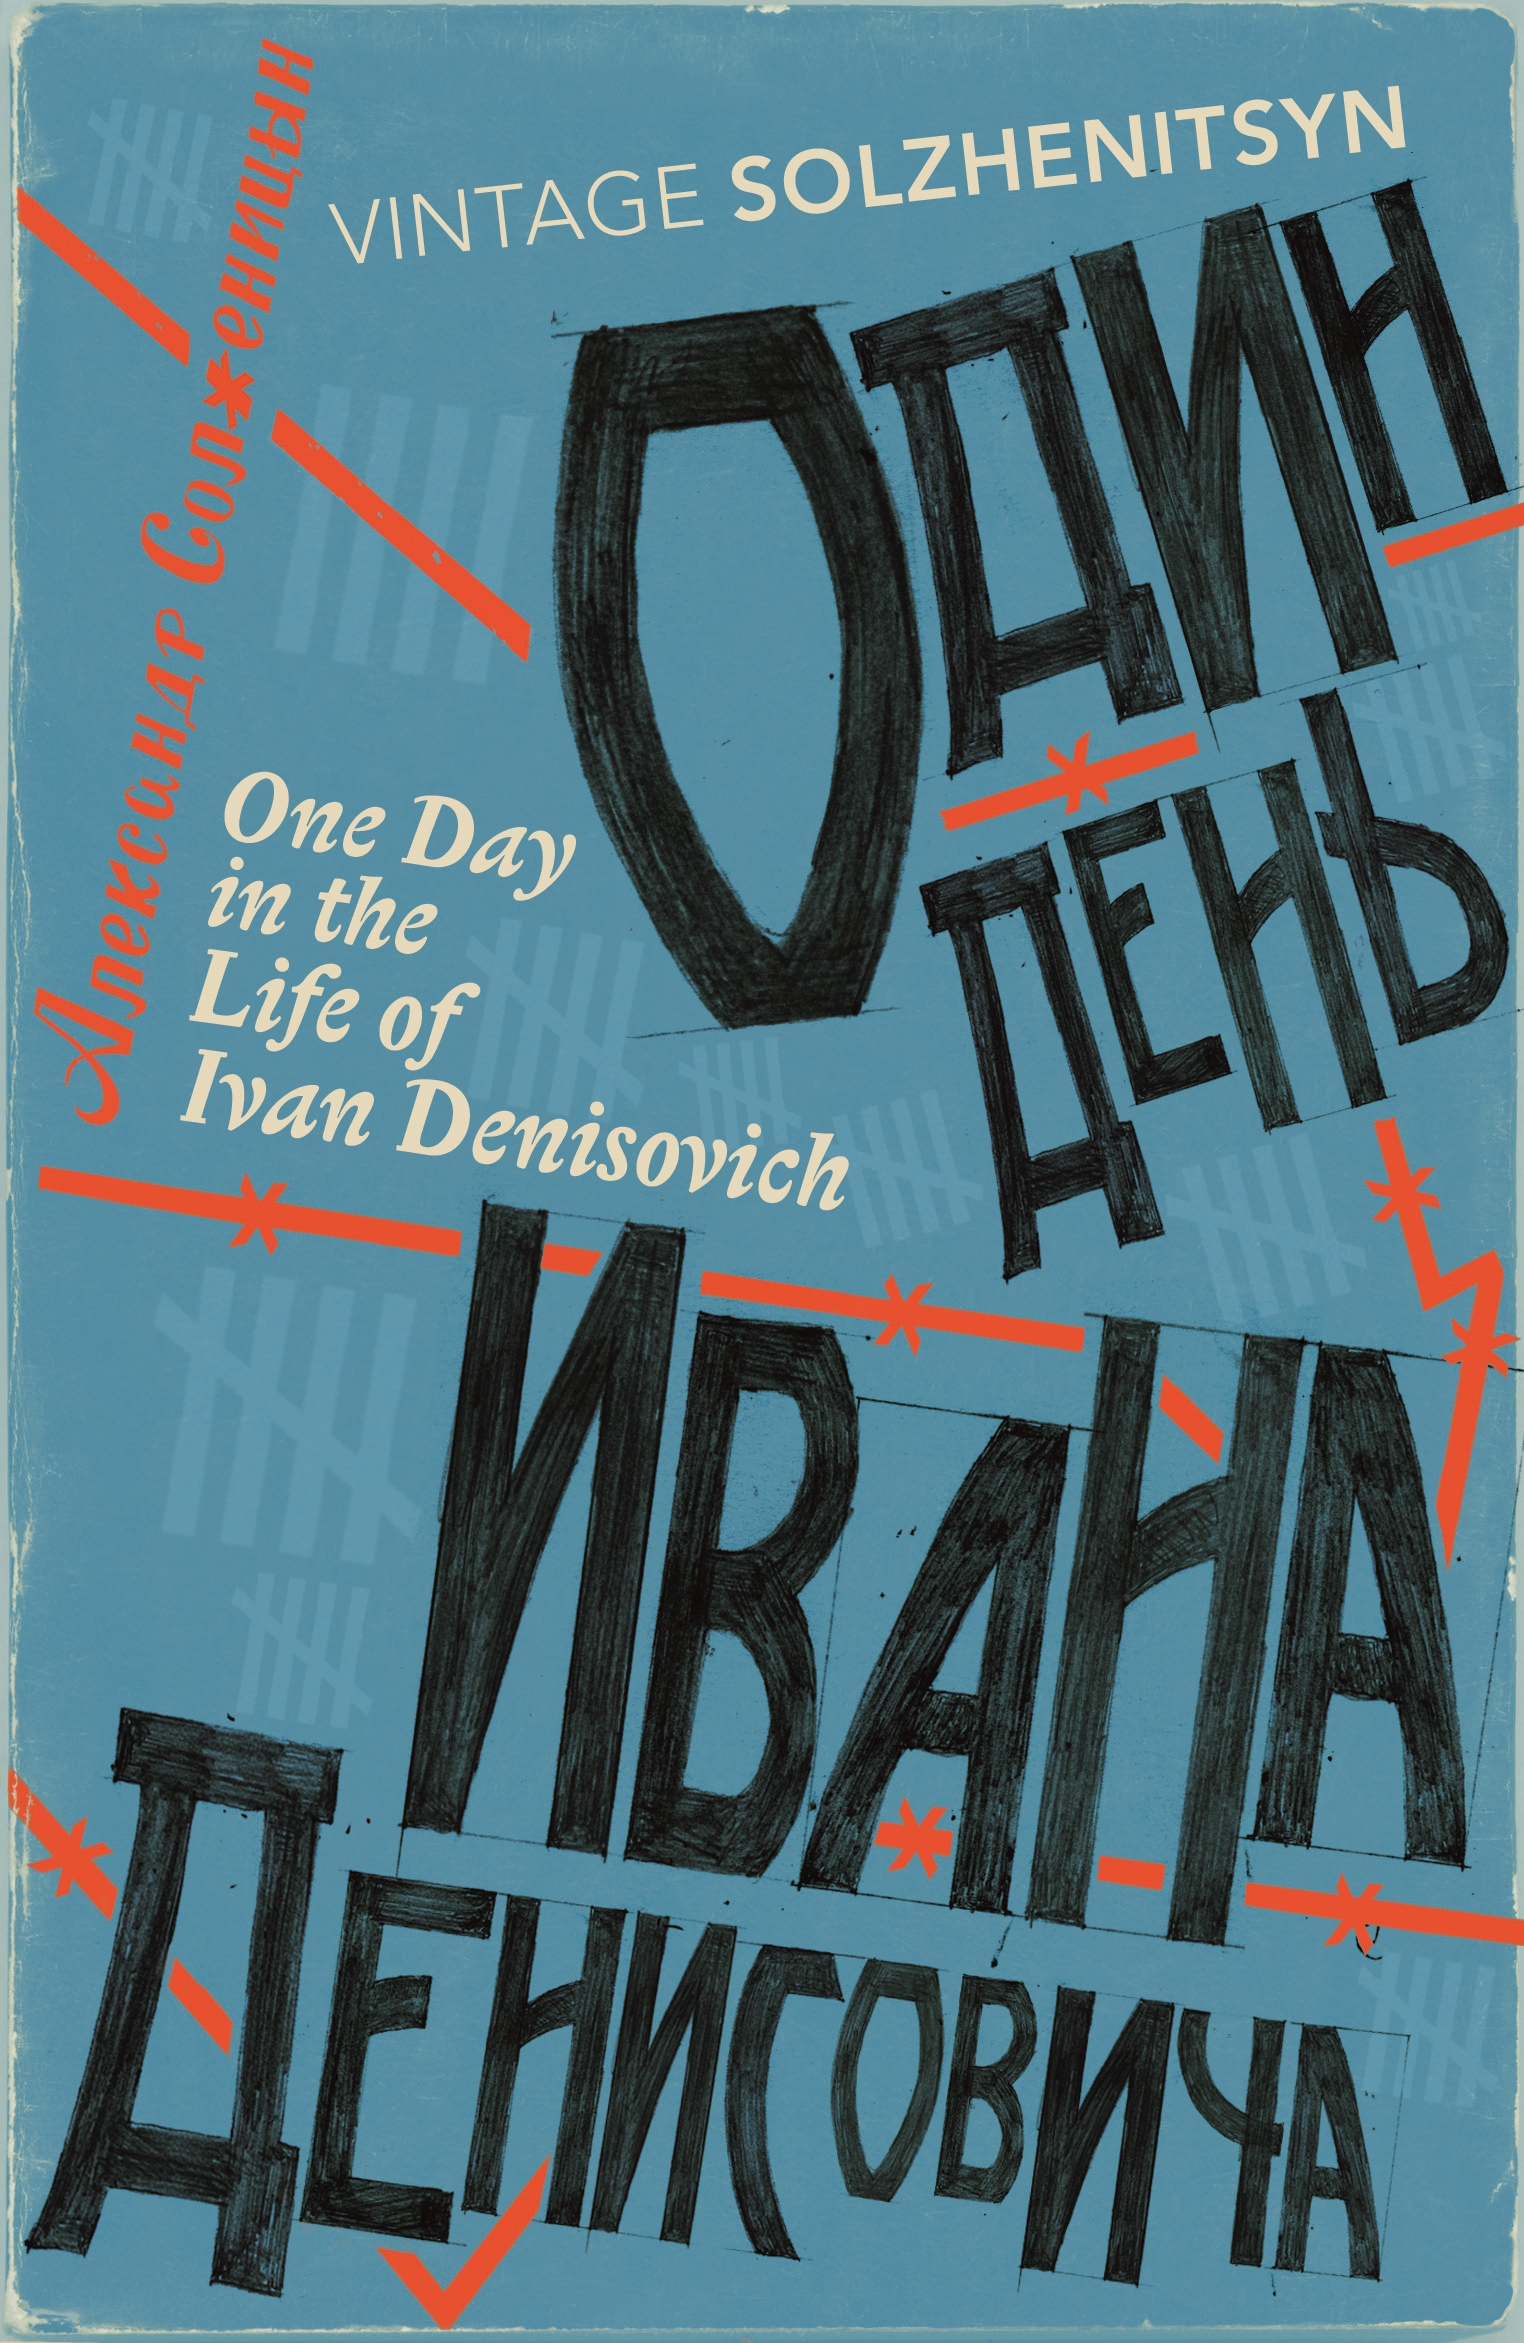 an examination of the novel one day in the life of ivan denisovich by aleksandr solzhenitsyn One day in the life of ivan denisovich exam study play  leading soviet literary periodical that published solzhenitsyn's novella one day in the life, making him an instant celebrity  this novel was indirectly based on solzhenitsyn's years spent working in a prison research institute as a mathematician.